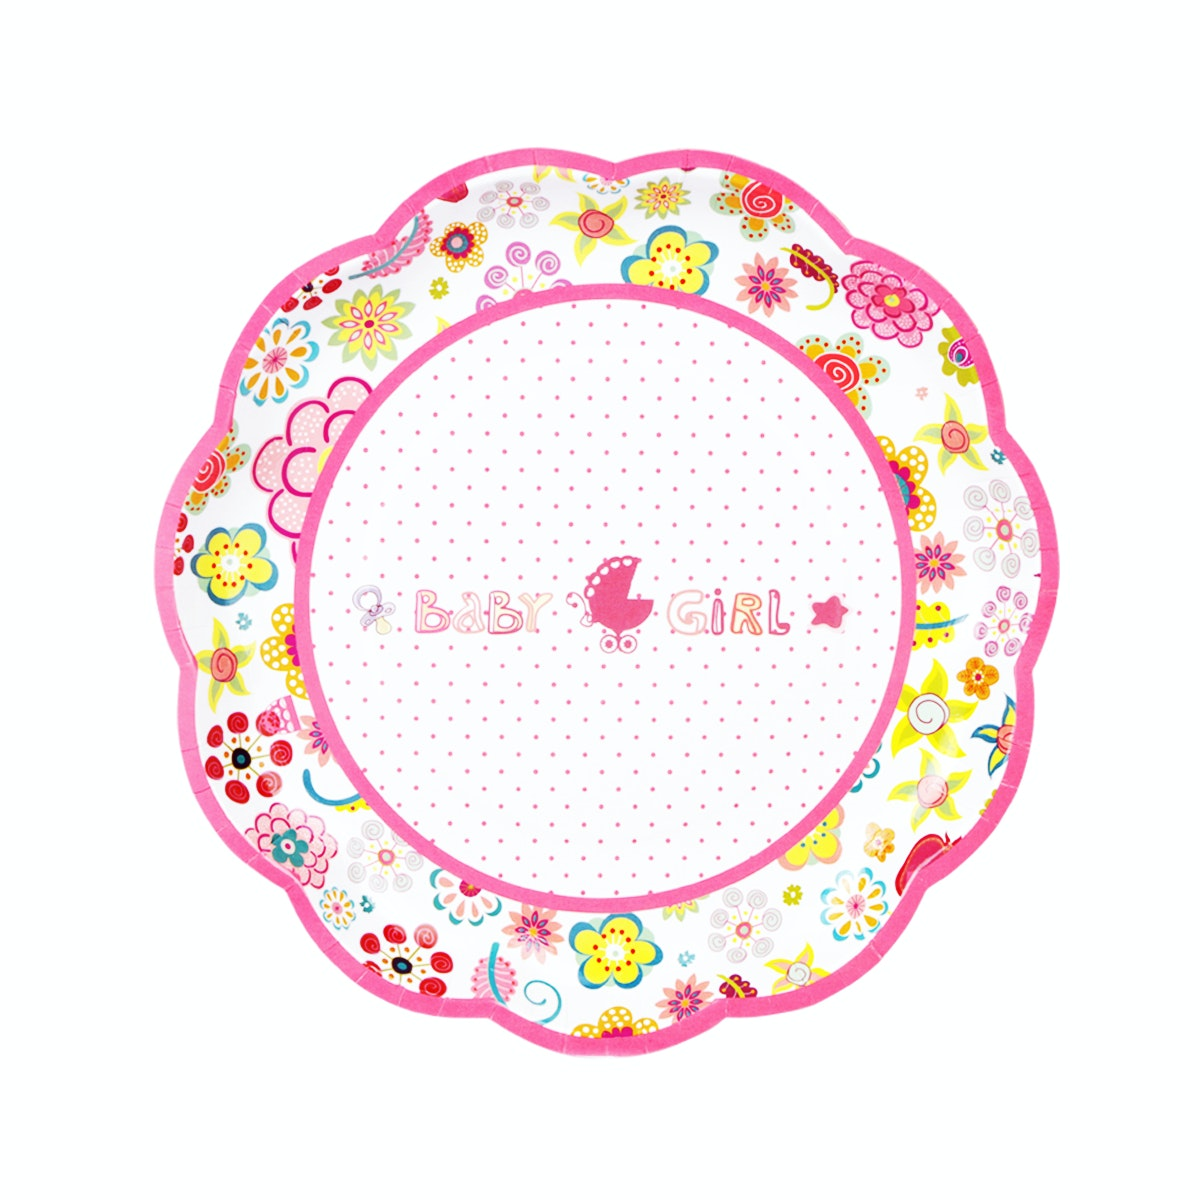 Bakers Baby Girl Plate